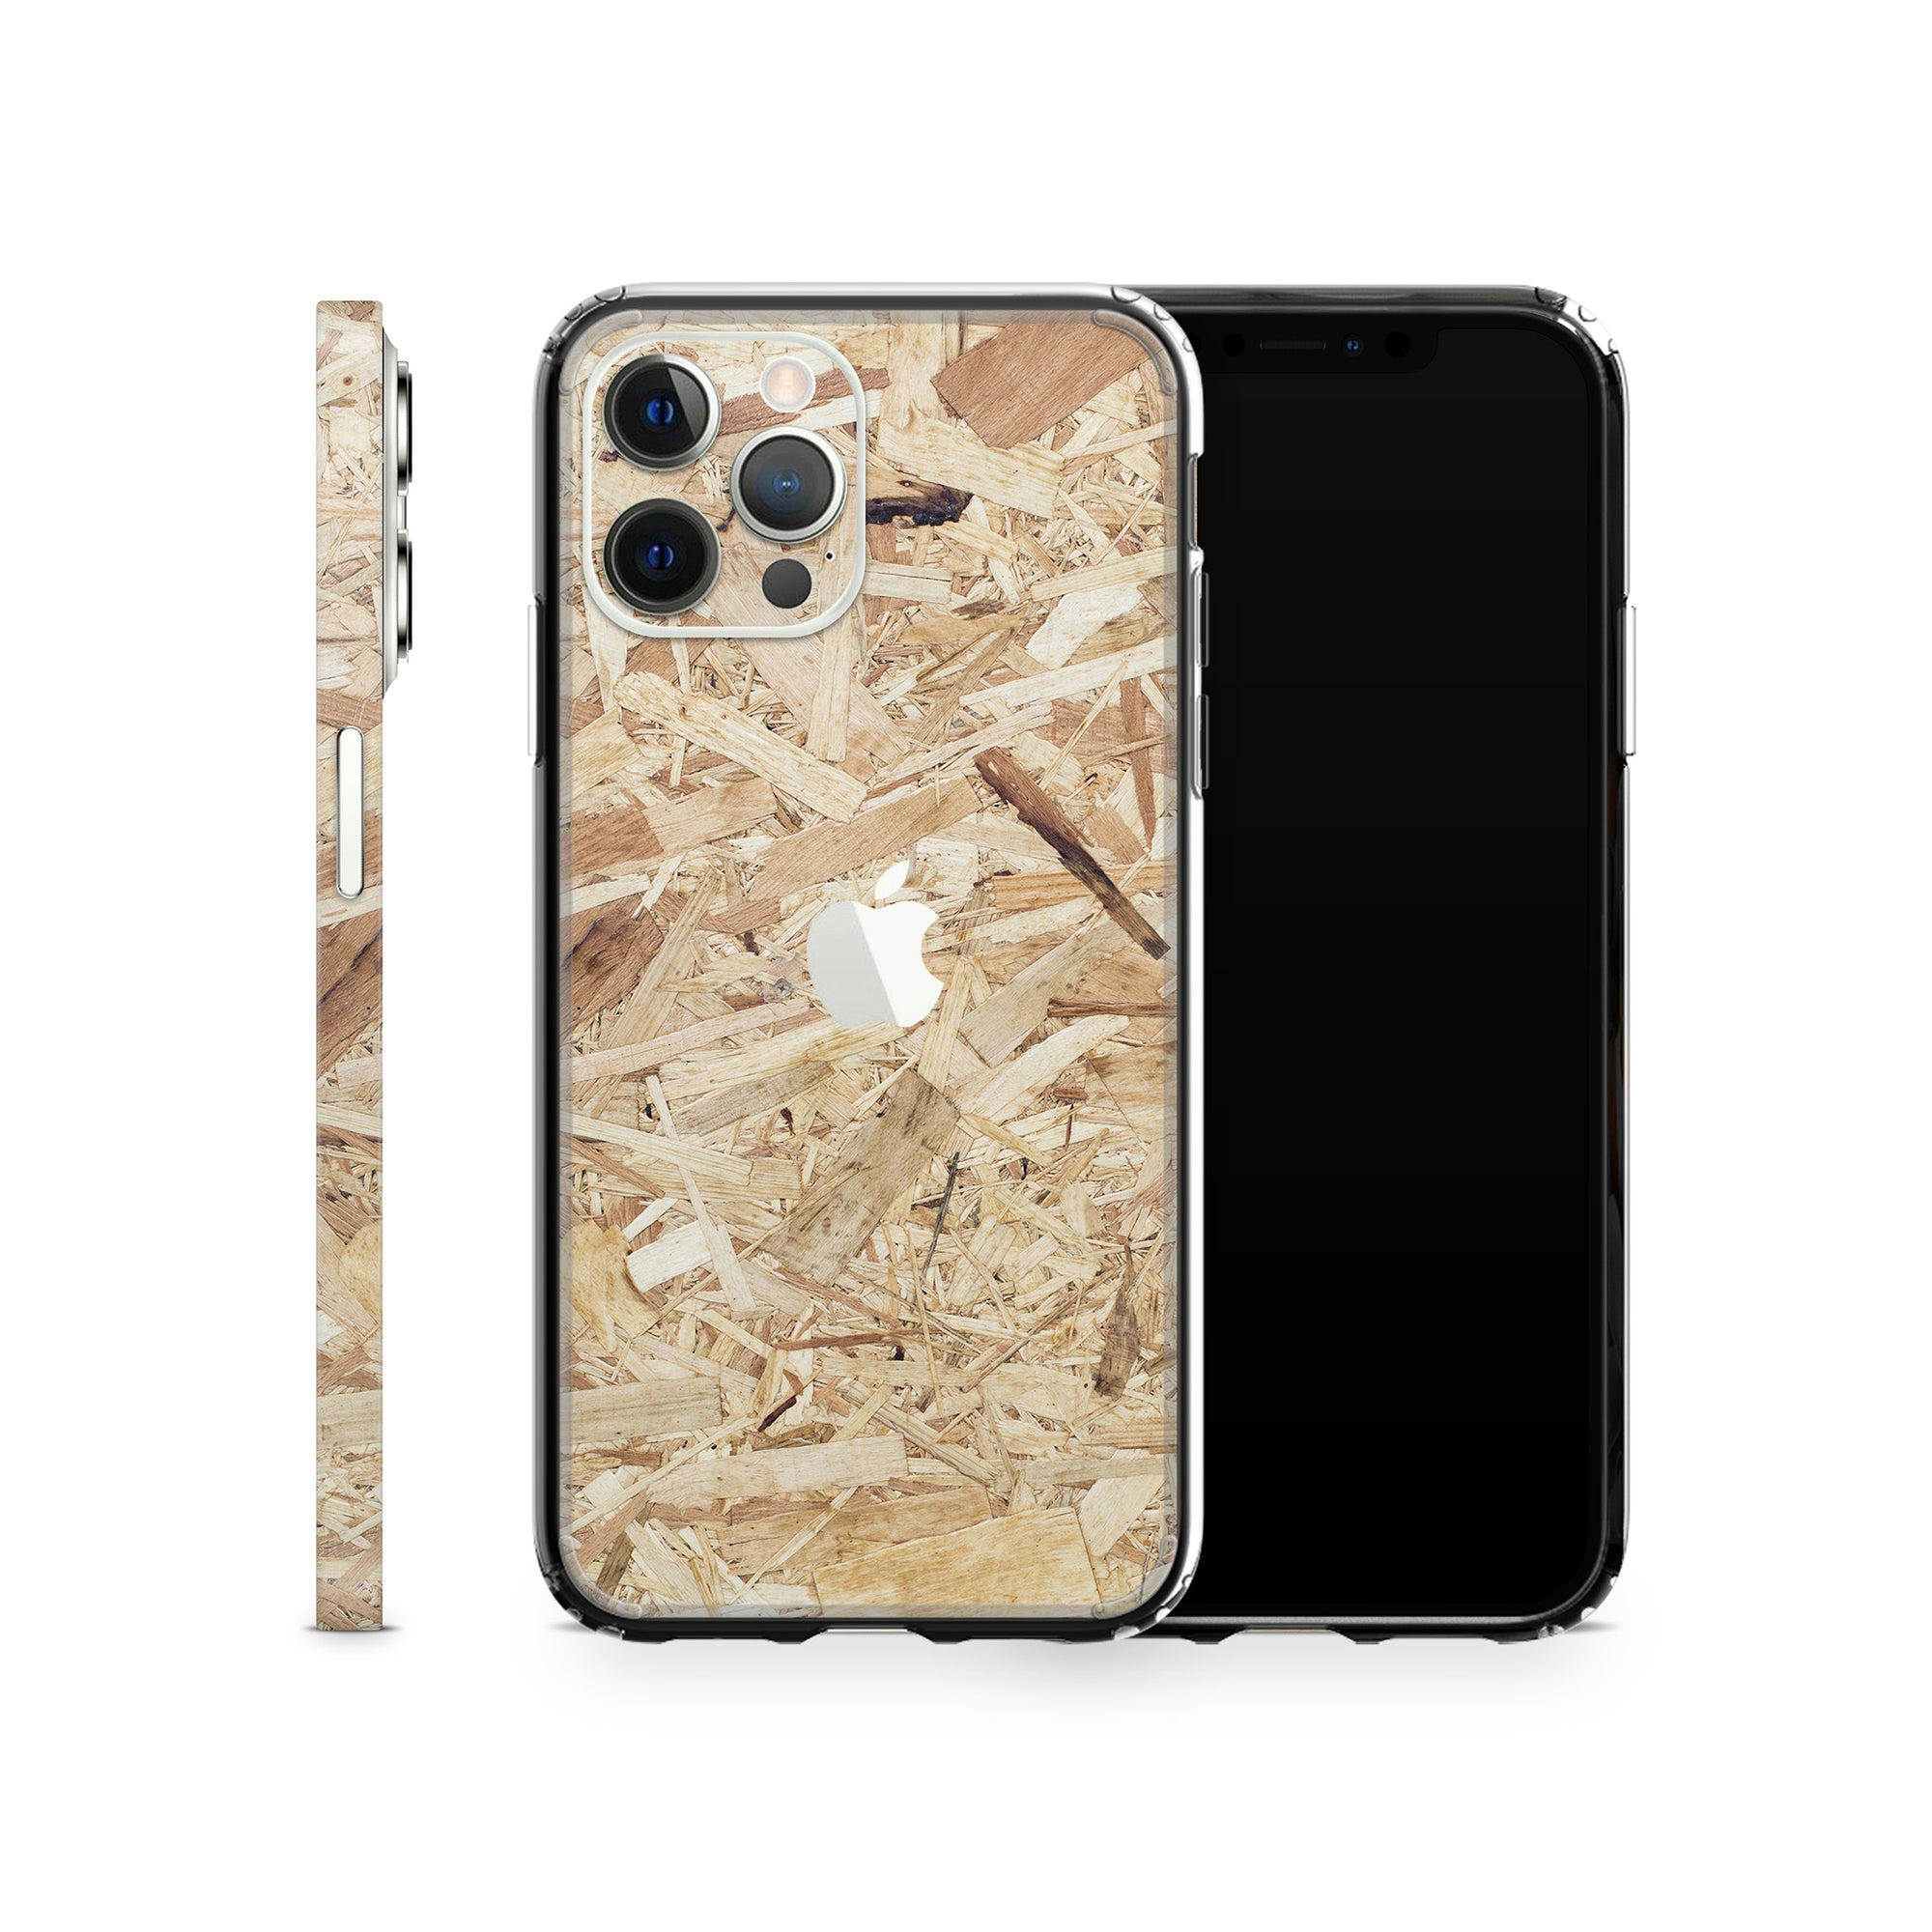 iPhone Case 12 Pro Max Plywood